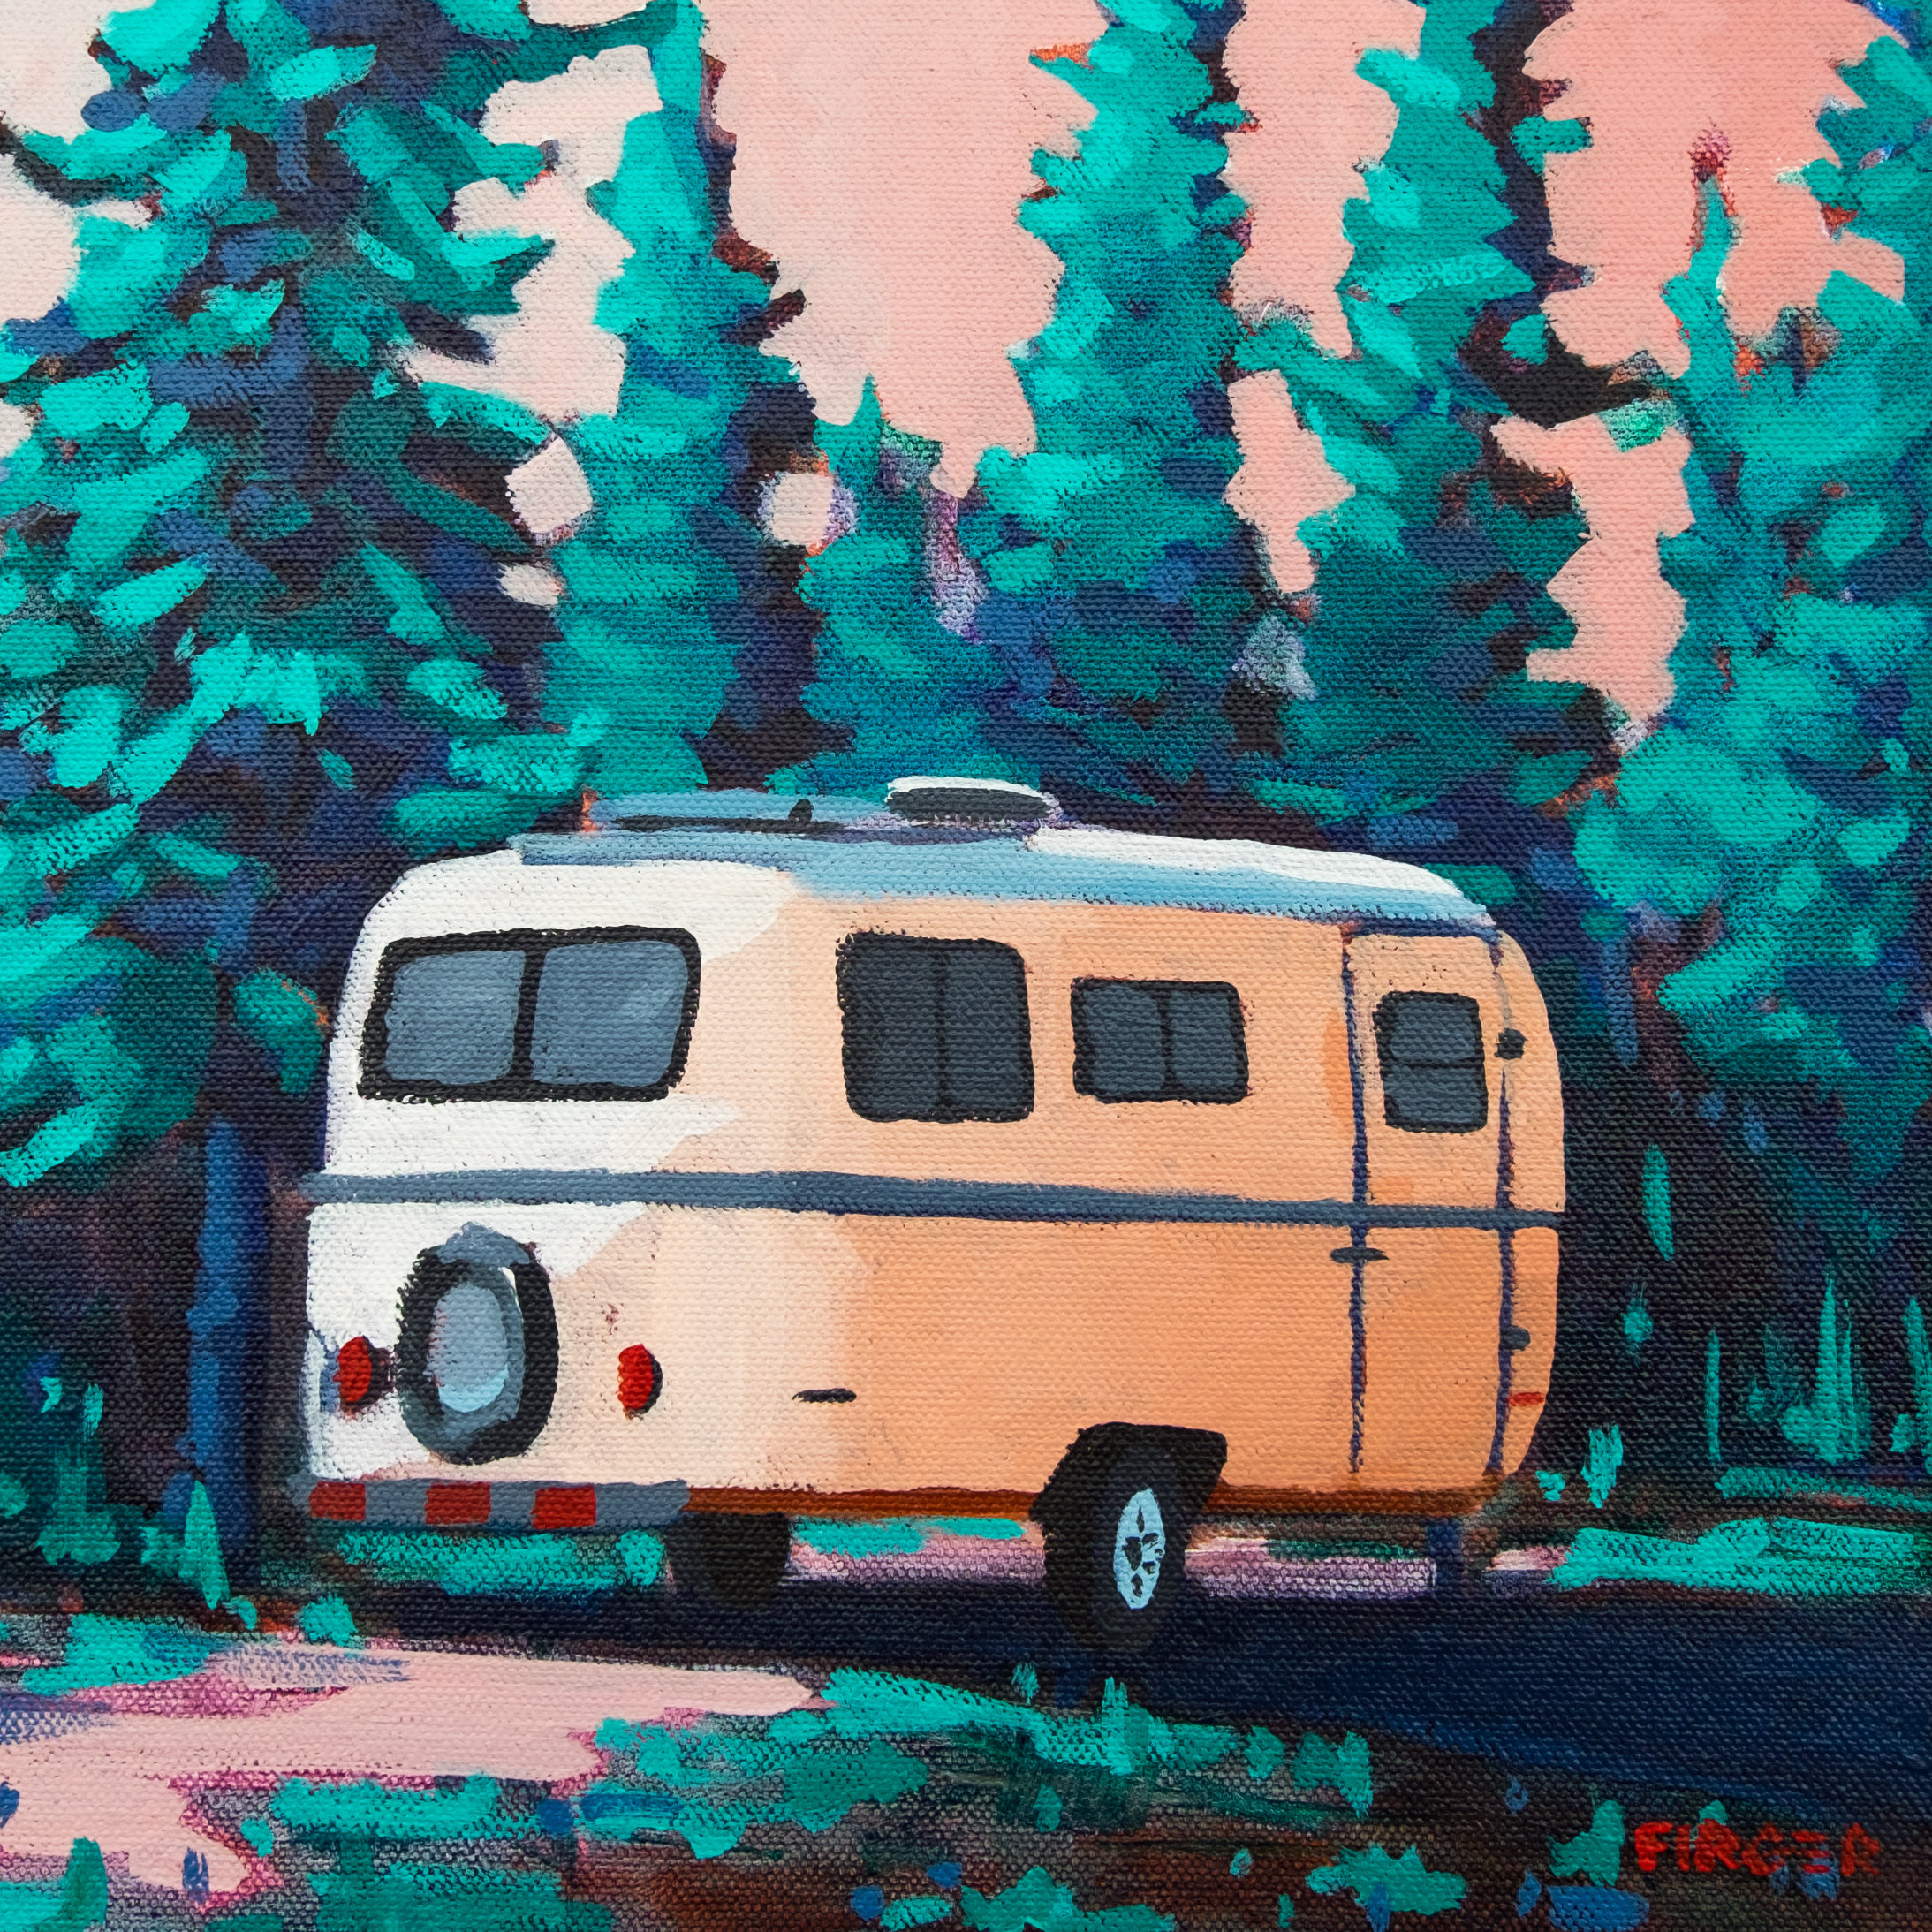 Roaming in the Rockies - 10 x 10, Acrylic on Canvas (SOLD)